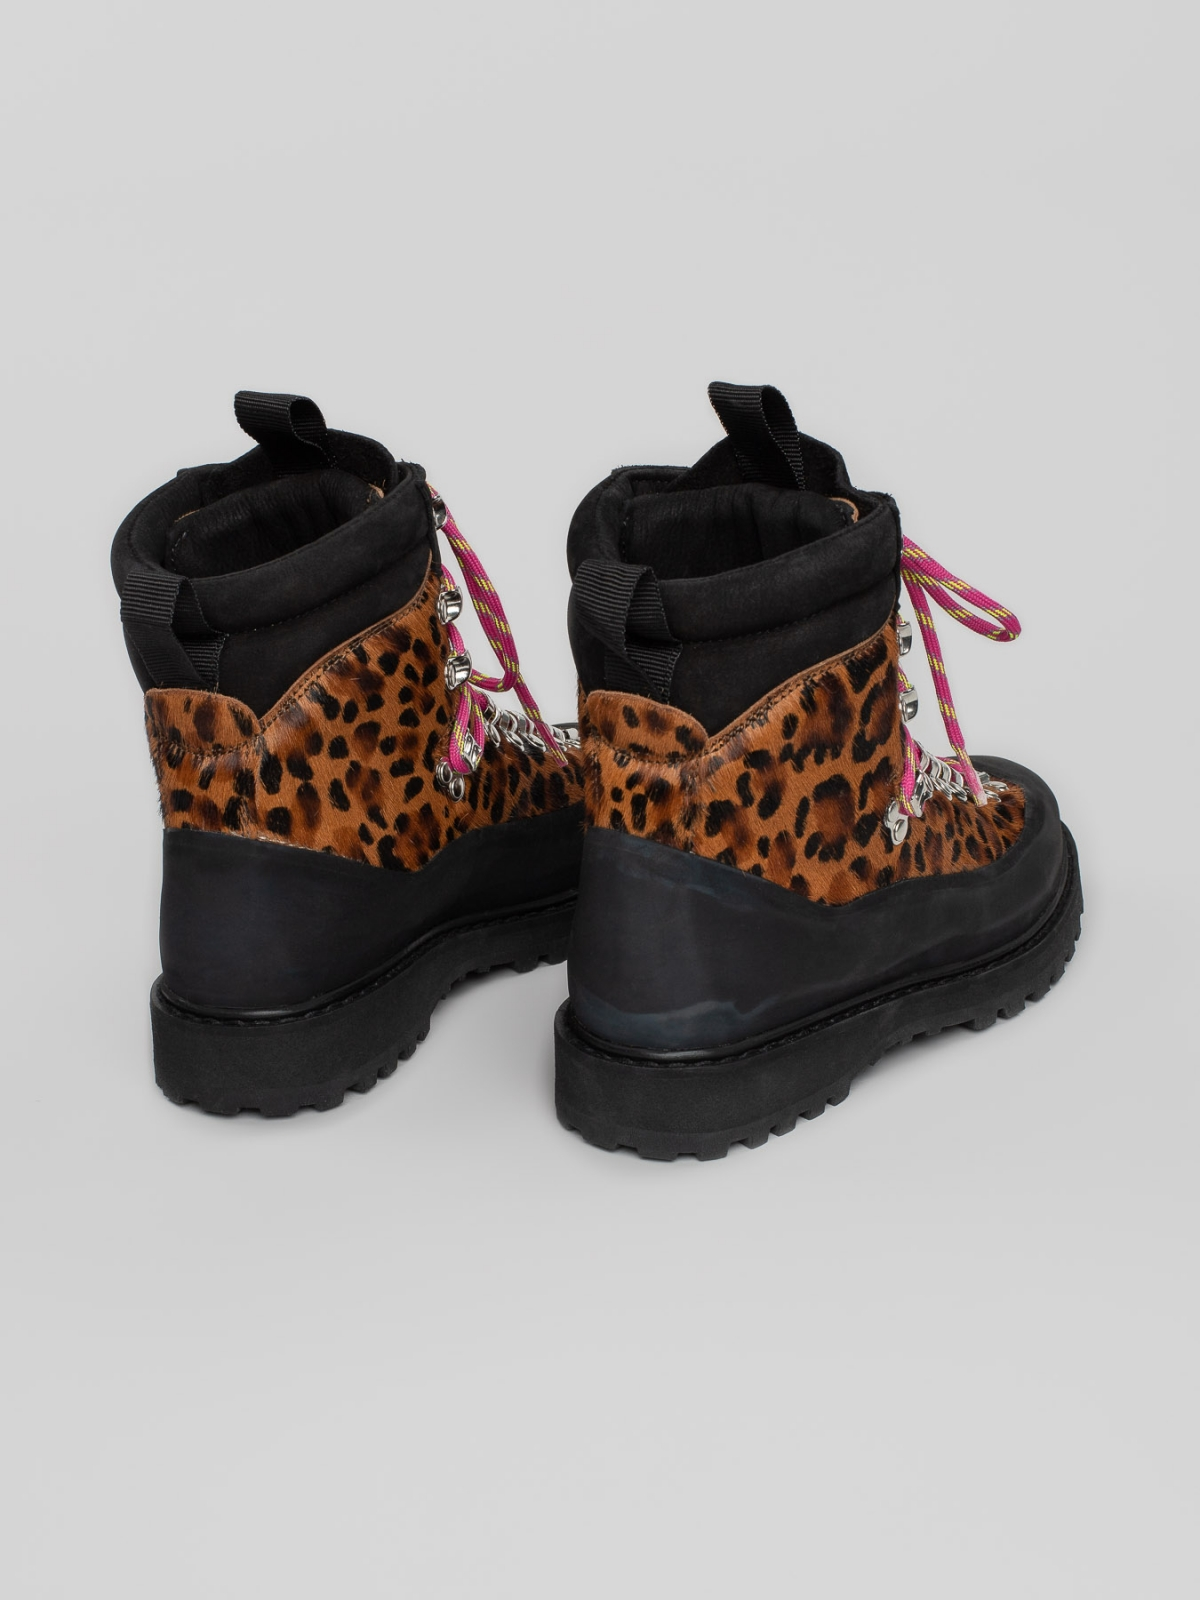 Diemme Everest Dark Leopard Boots